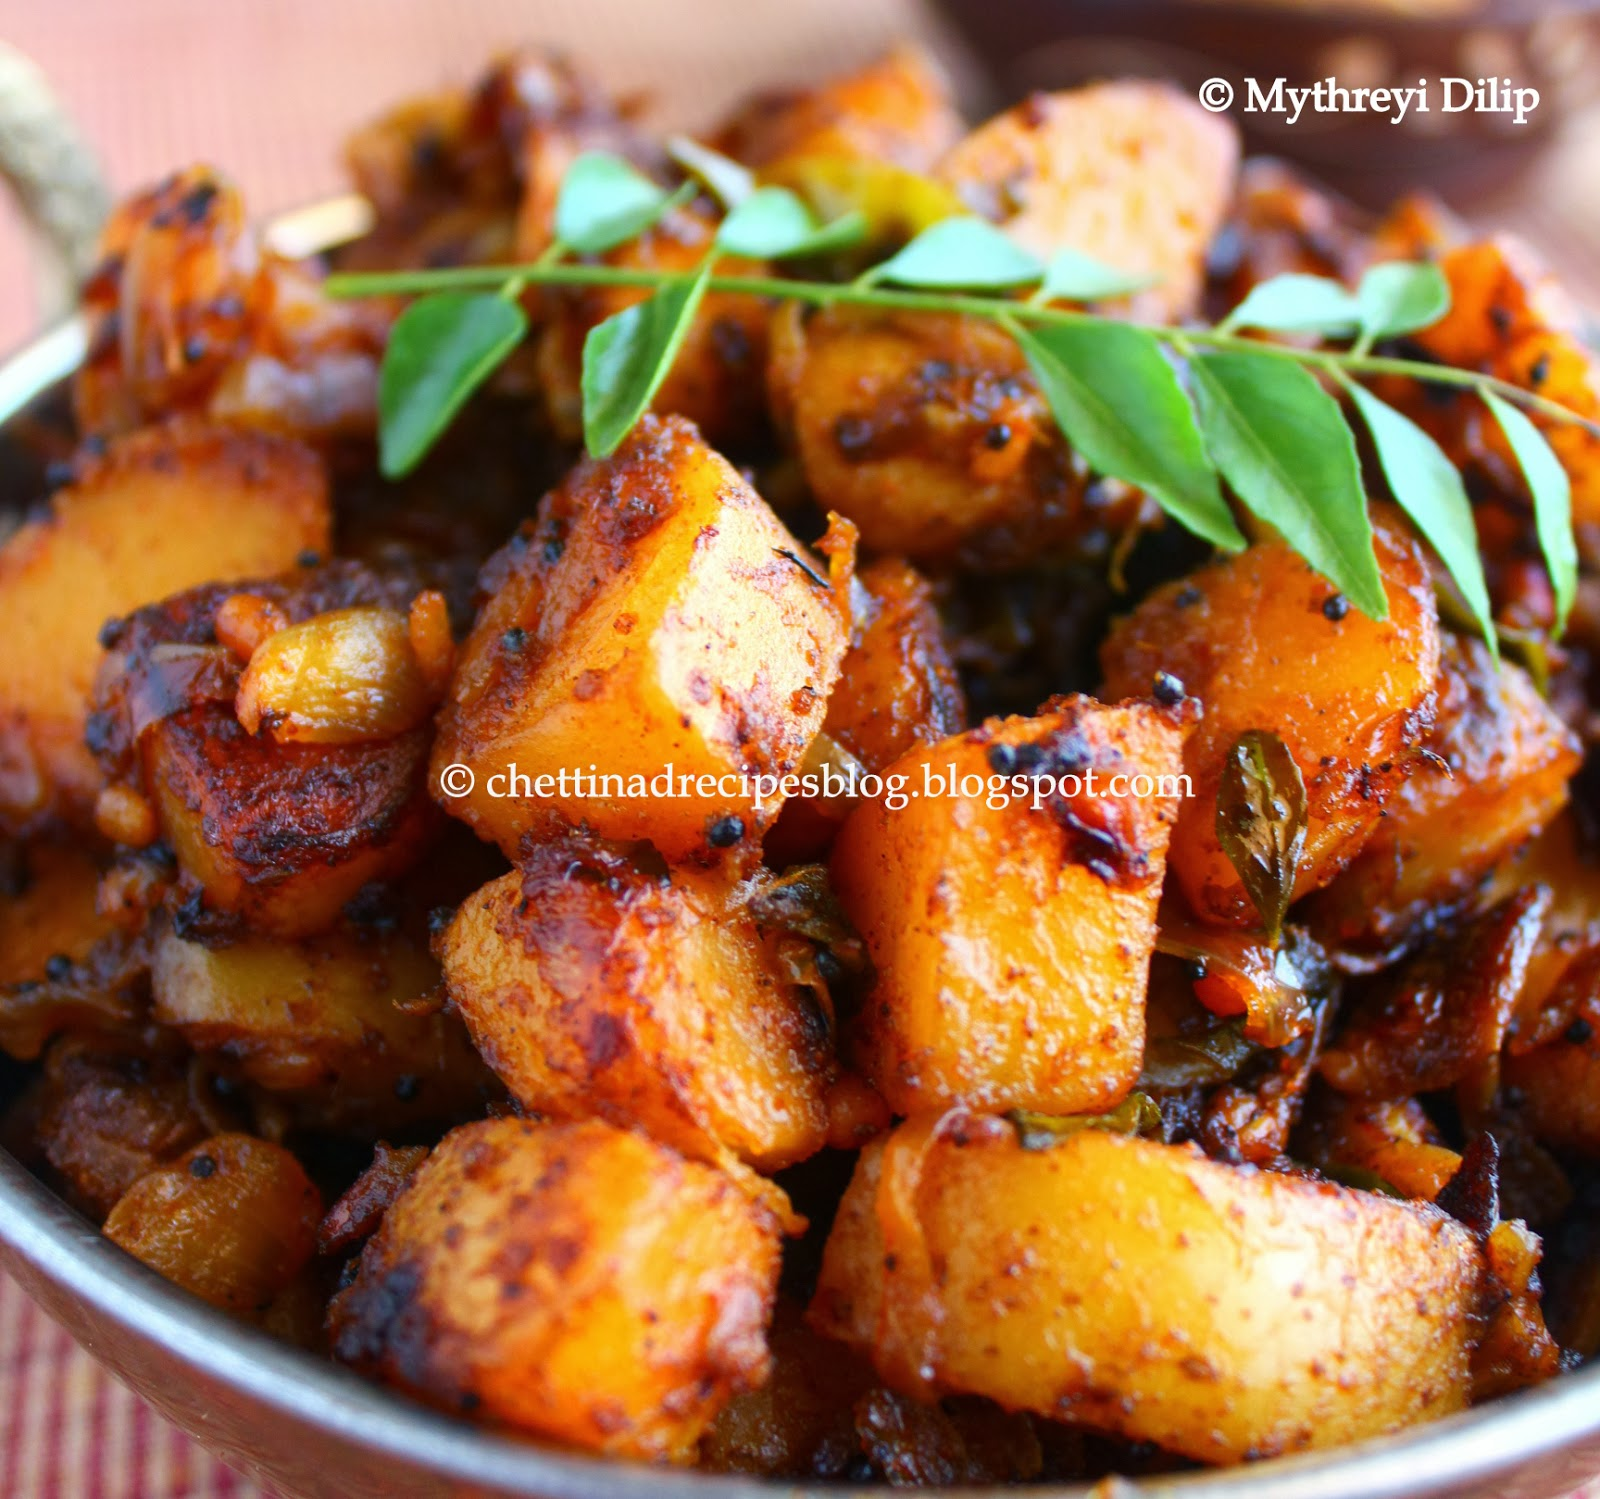 Chettinad Recipes: Ennai Urulai Kizhangu Varuval / Crispy Potato Roast